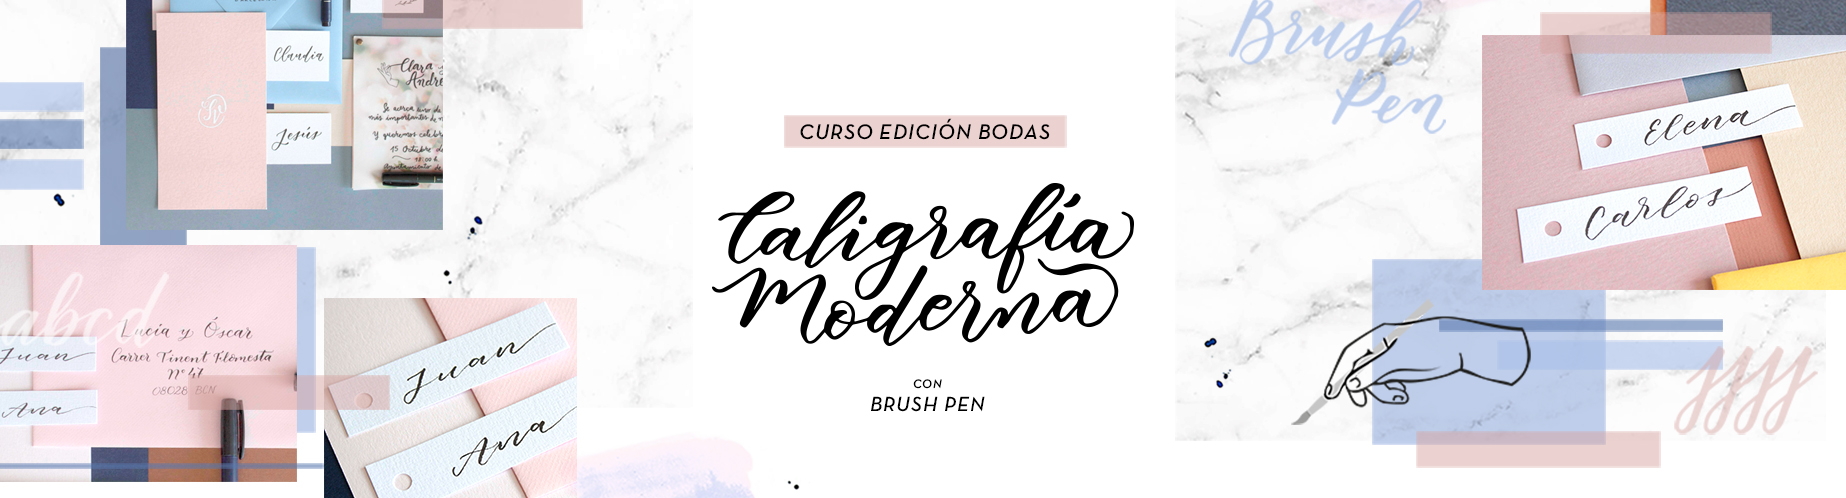 collage_curso_caligrafia_banner